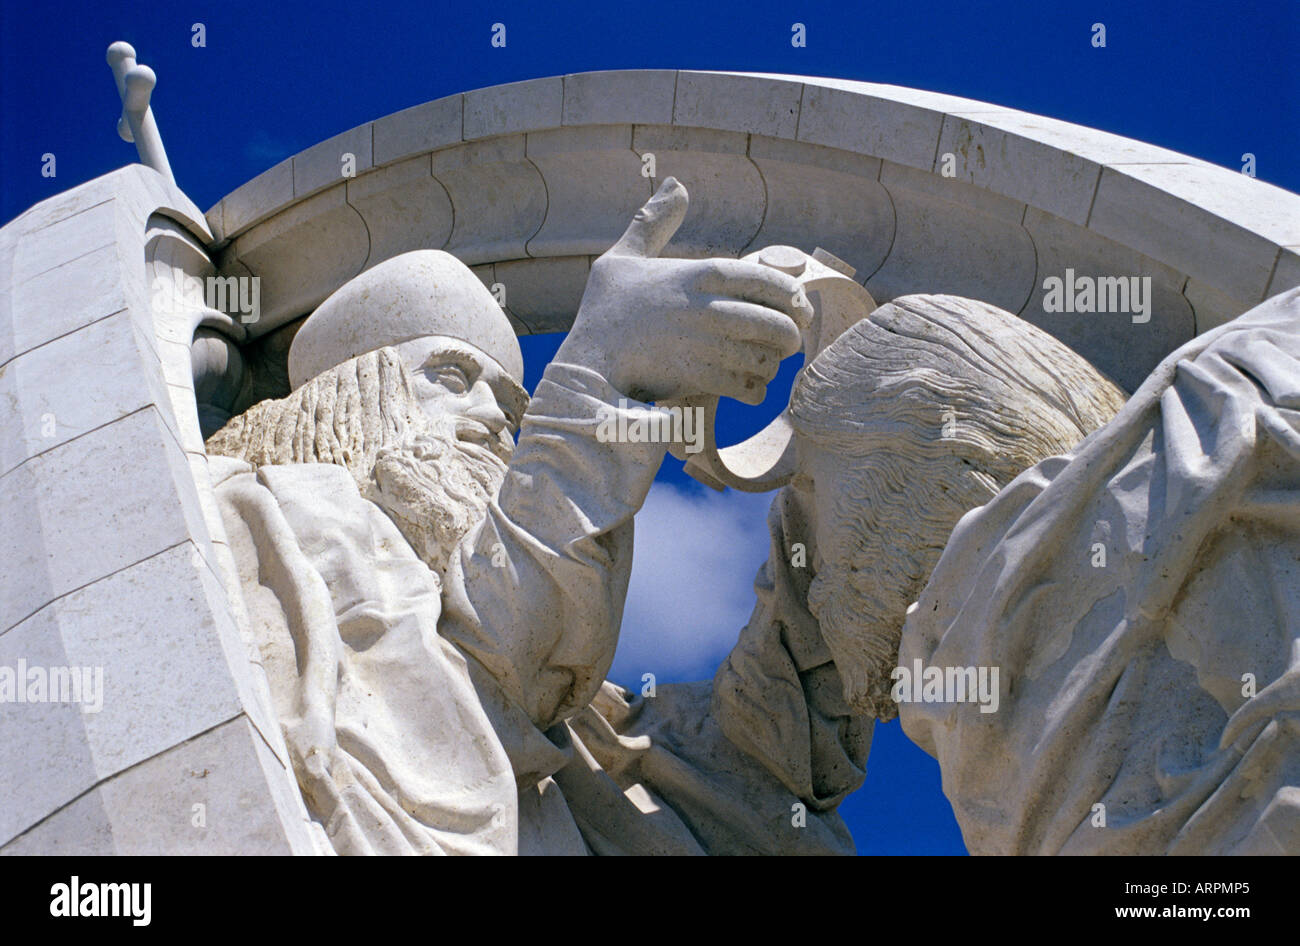 The Statue of Coronation of the First King of Hungary - St. Stephen - by a Papal Envoy in Esztergom, Hungary Stock Photo